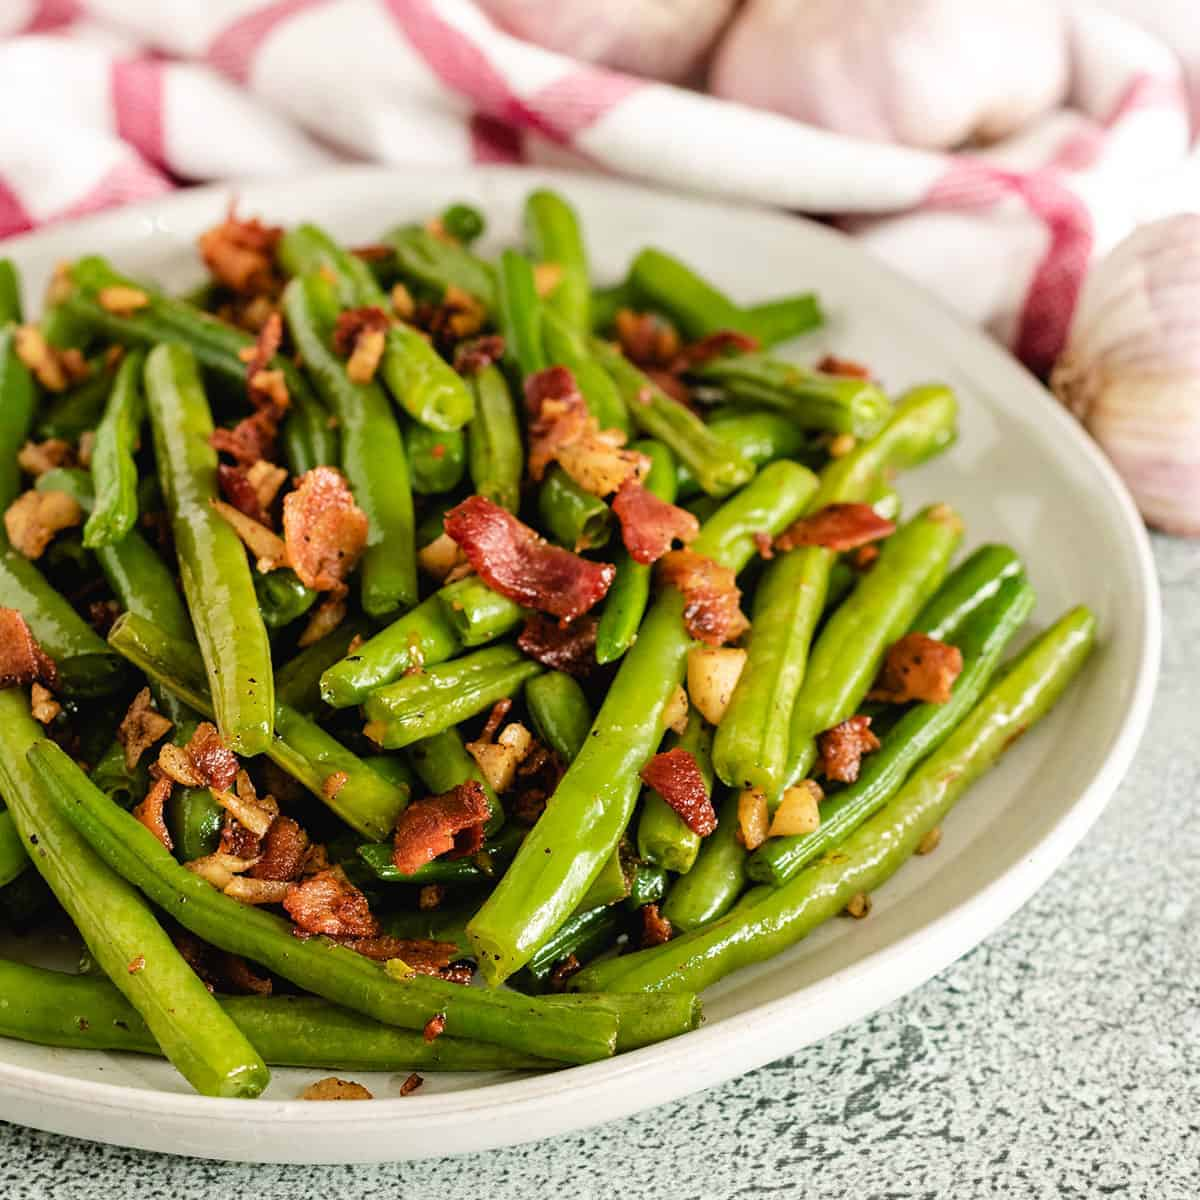 A big bowl filled with the sauteed green beans and bacon.